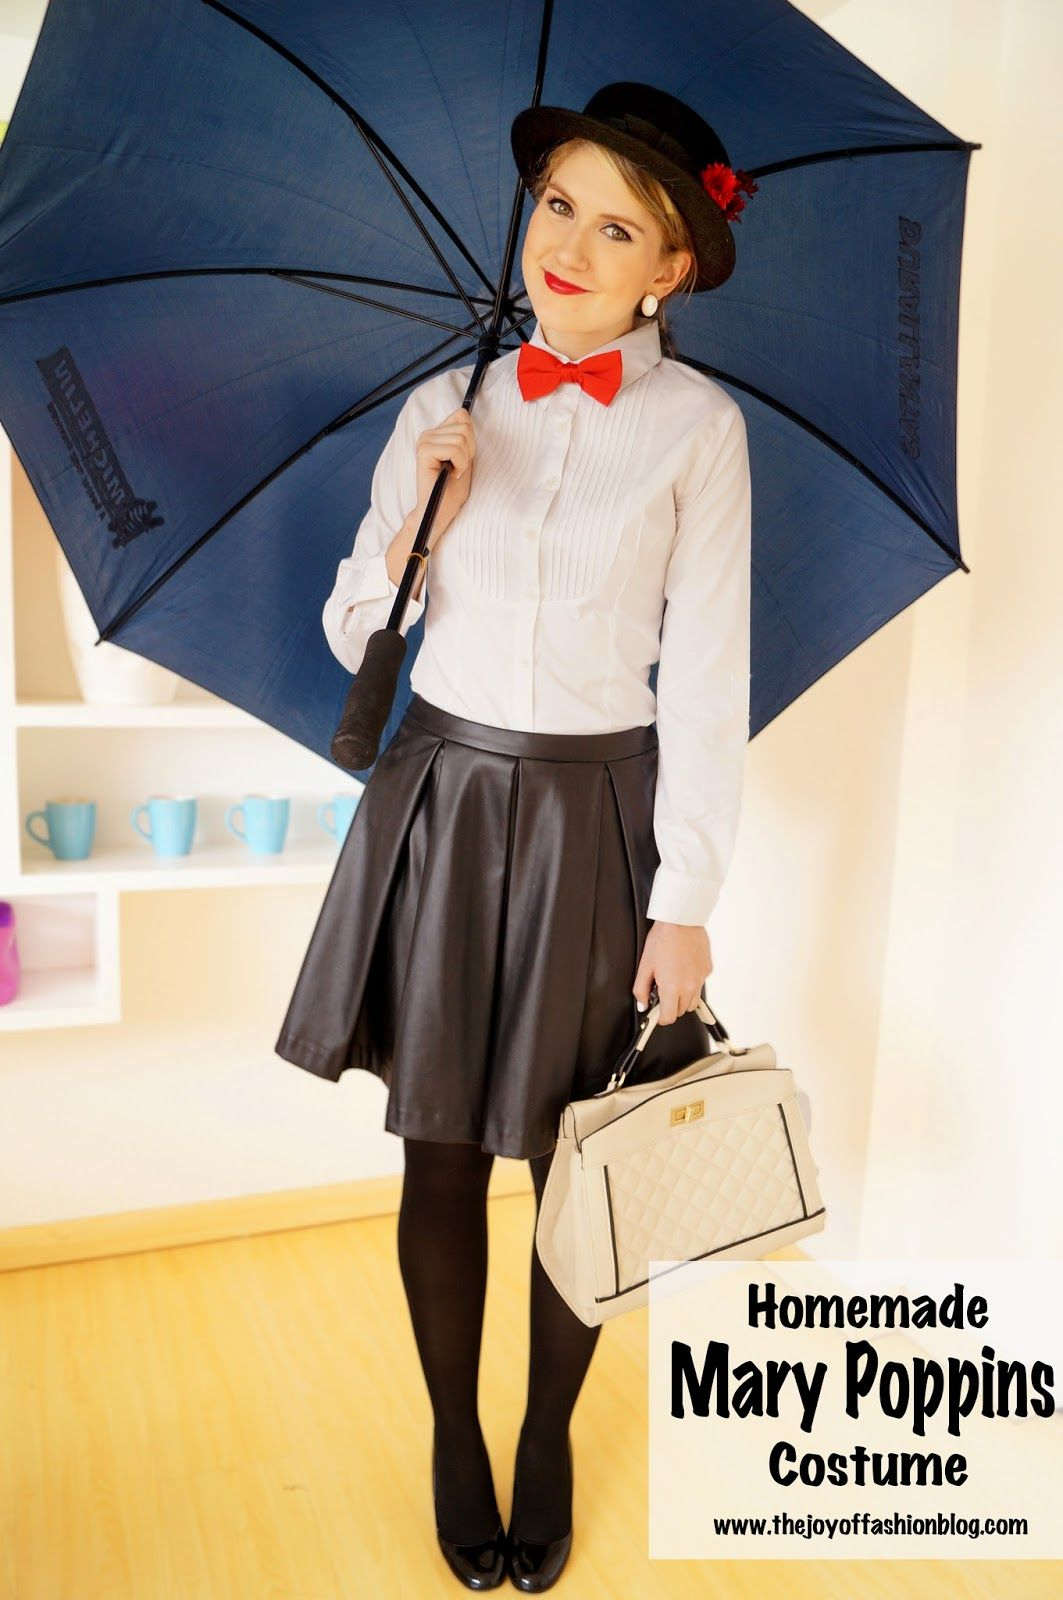 homemade mary poppins costume crafts diy pinterest mary poppins homemade and costumes. Black Bedroom Furniture Sets. Home Design Ideas